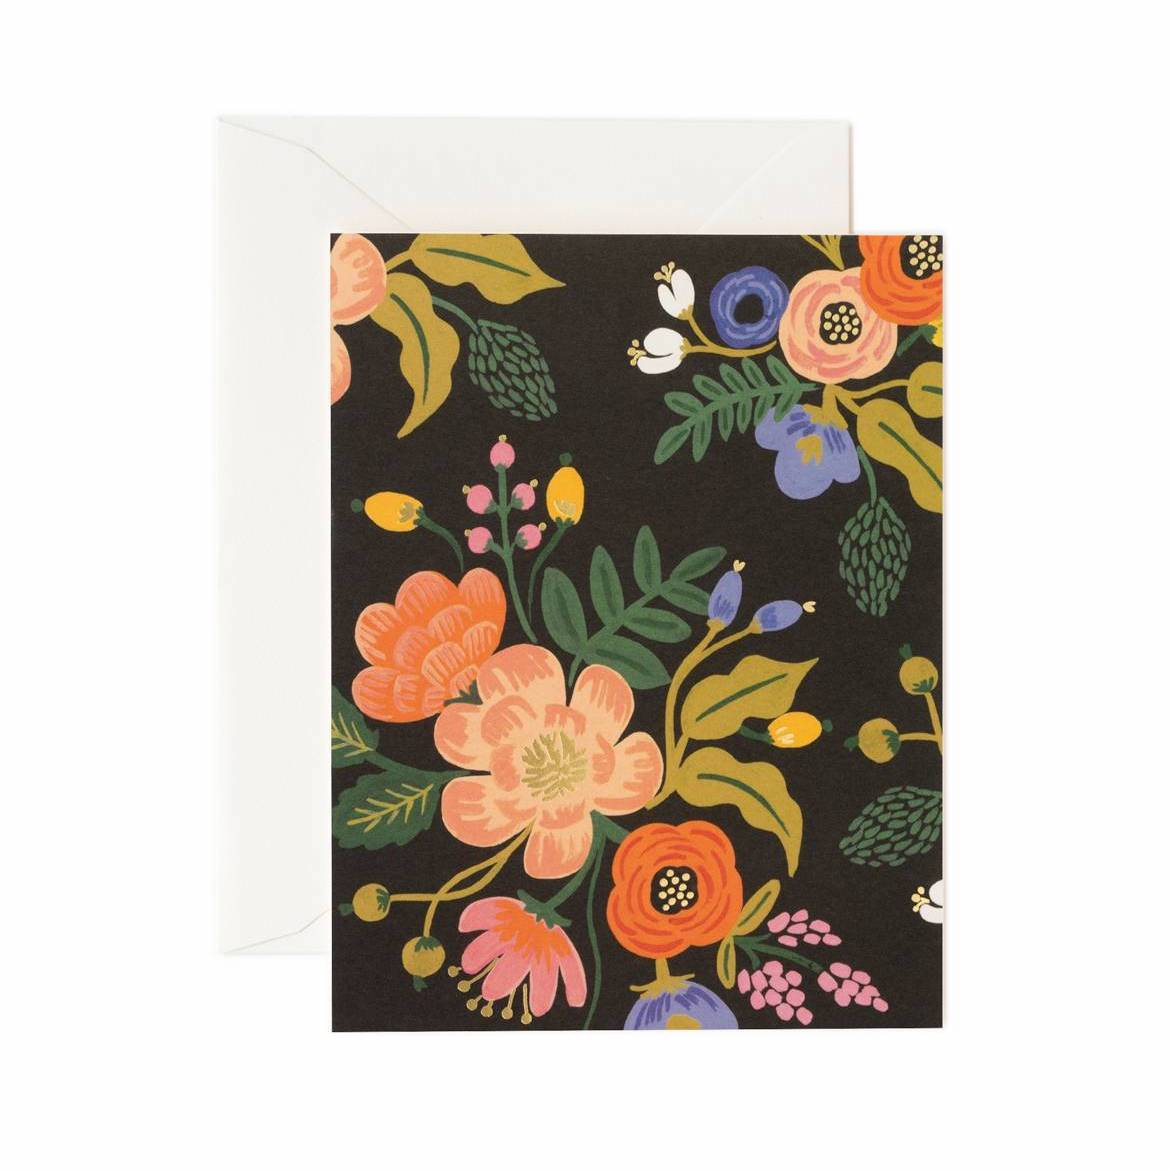 Lively Floral Card Set - Black - Rifle Paper Co.